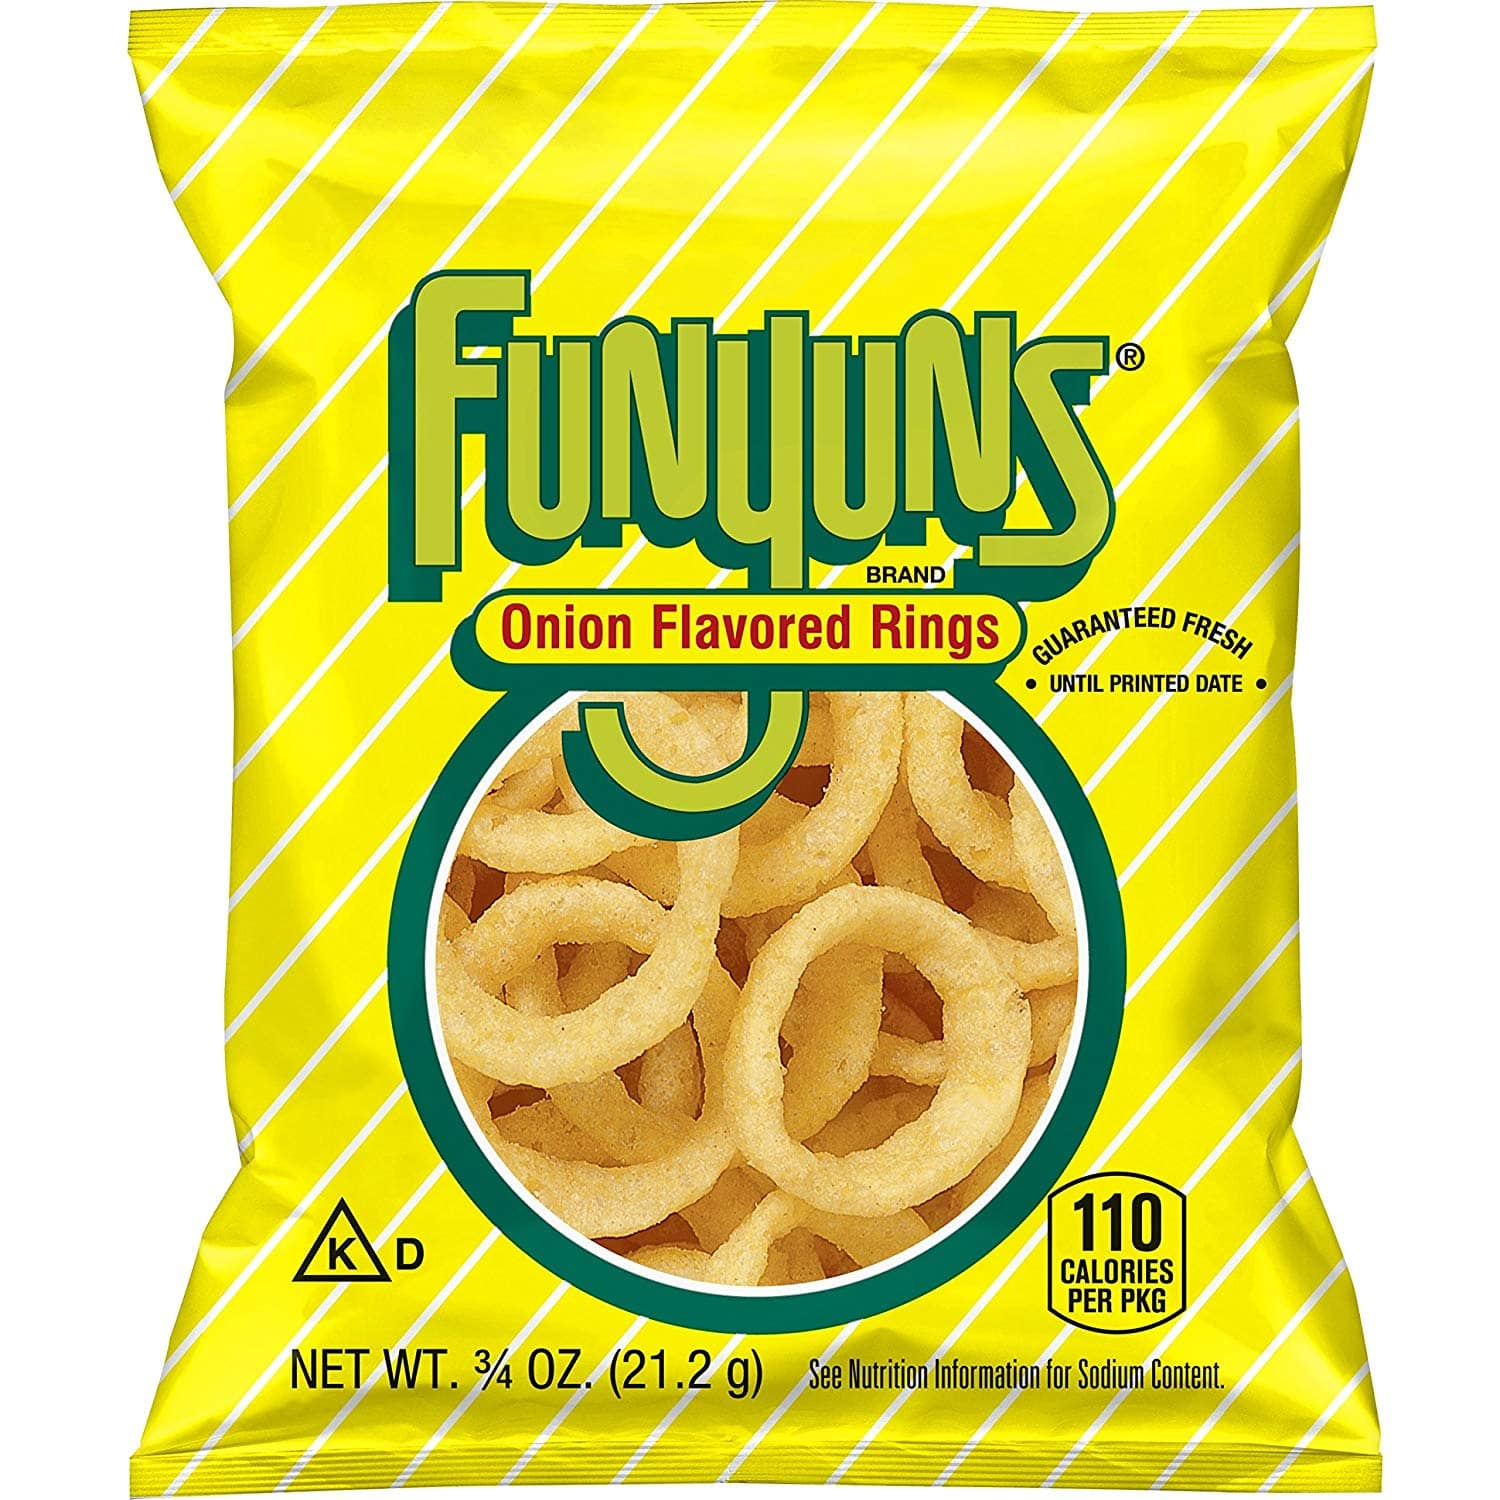 40-Pack 0.75oz Funyuns Onion Flavored Rings $9.66 w/ S&S + Free Shipping